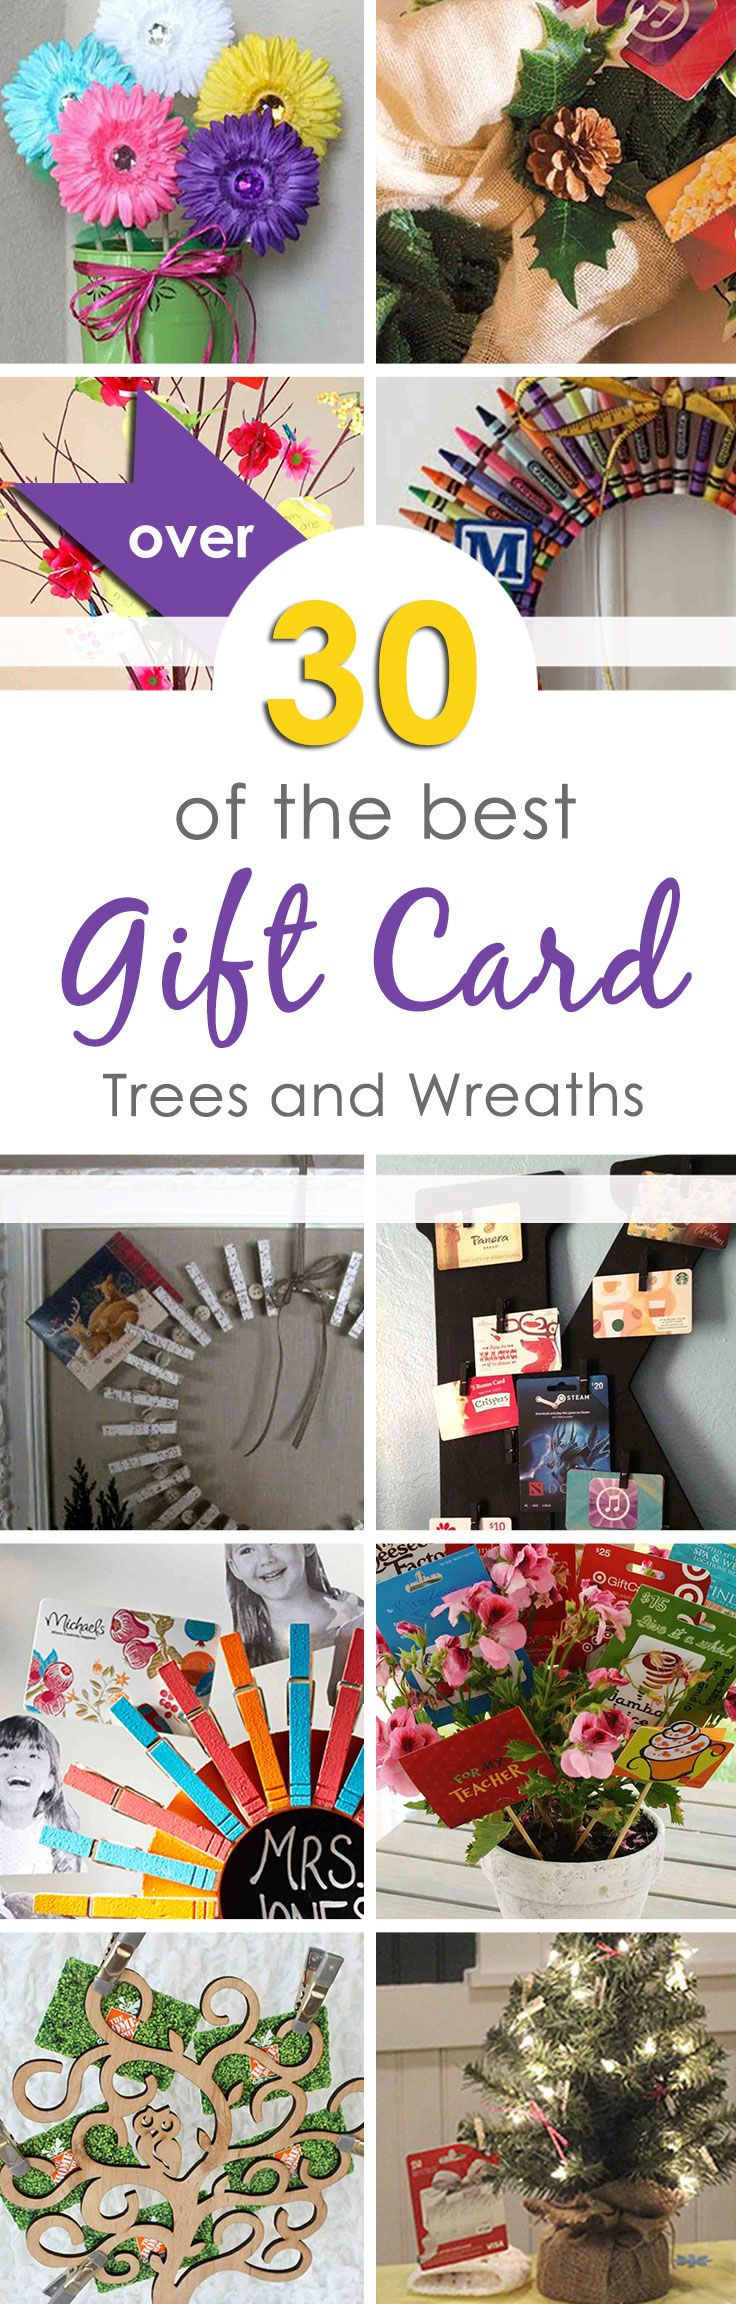 Best 25+ Best gift cards ideas on Pinterest | Best friend ...